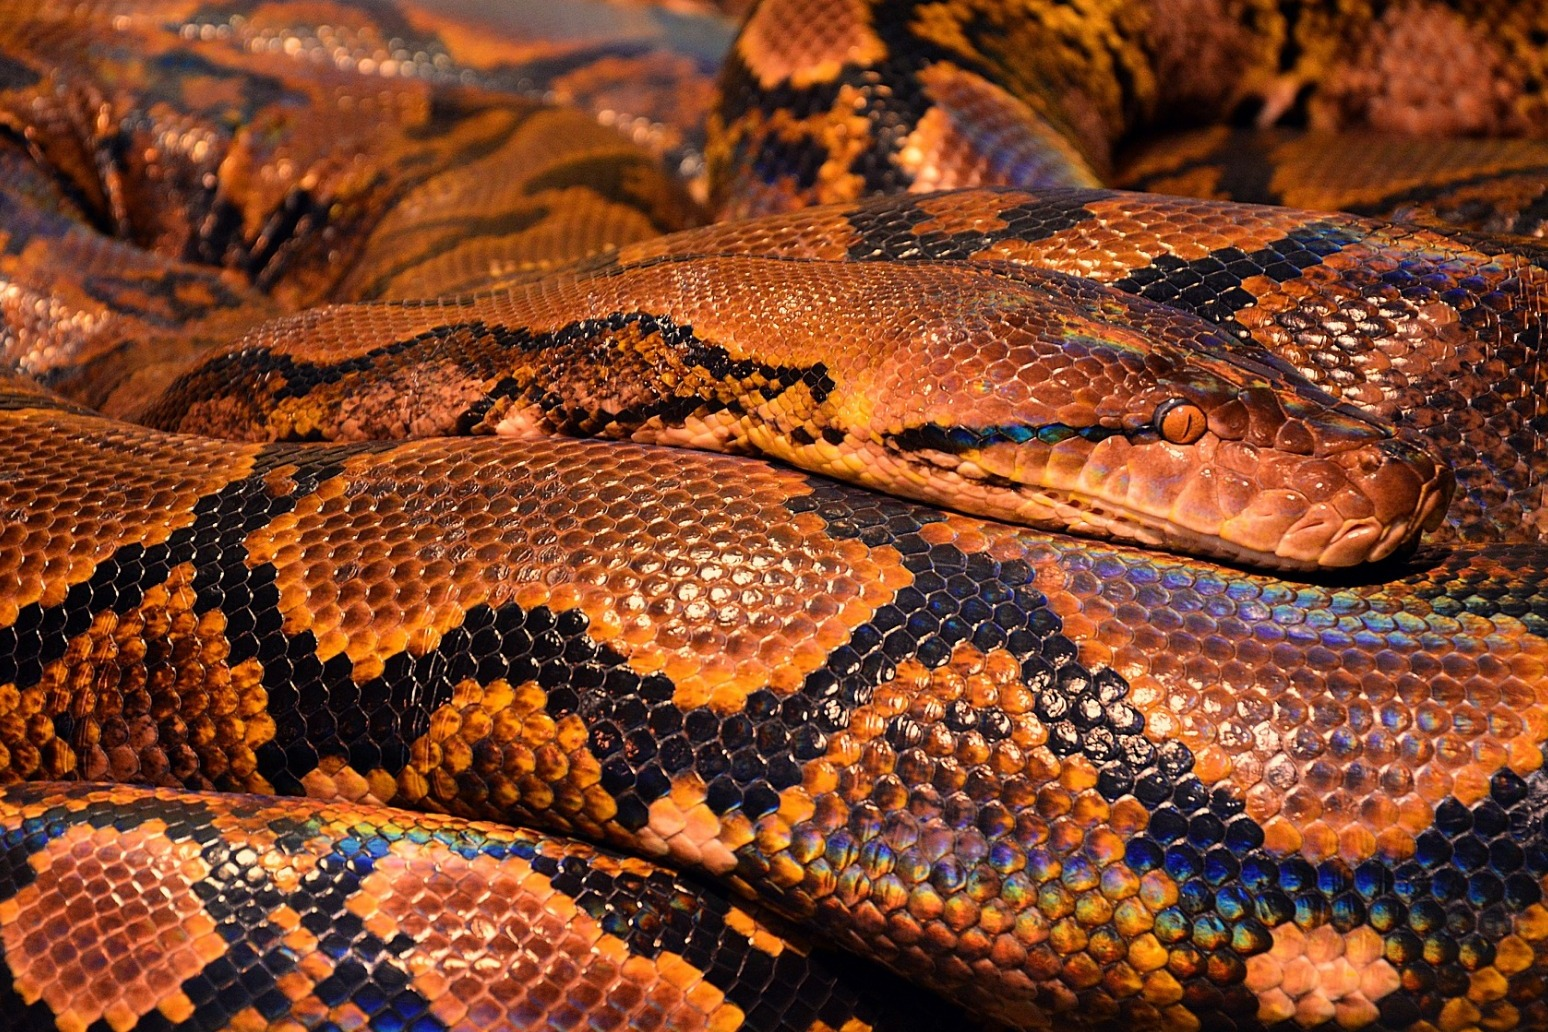 Woman illegally imported python-skin products